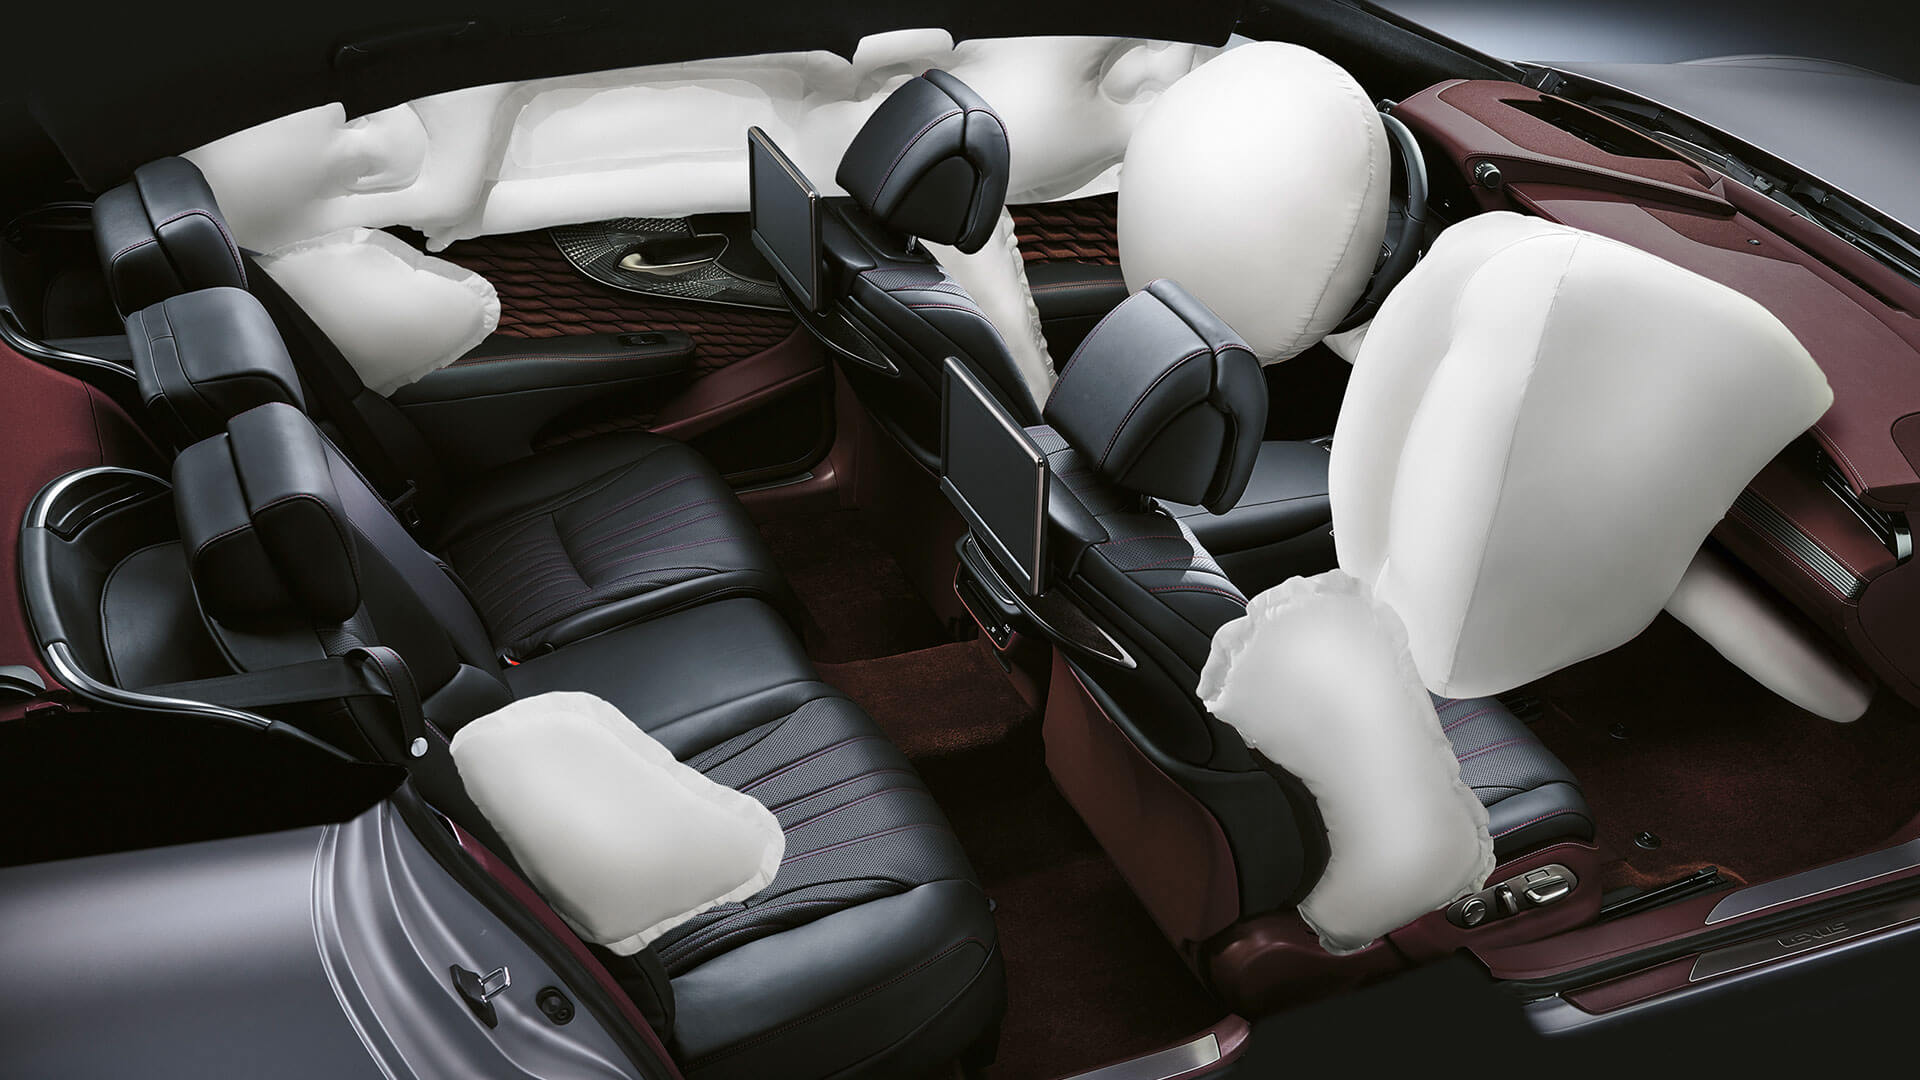 2018 lexus ls features fourteen airbags